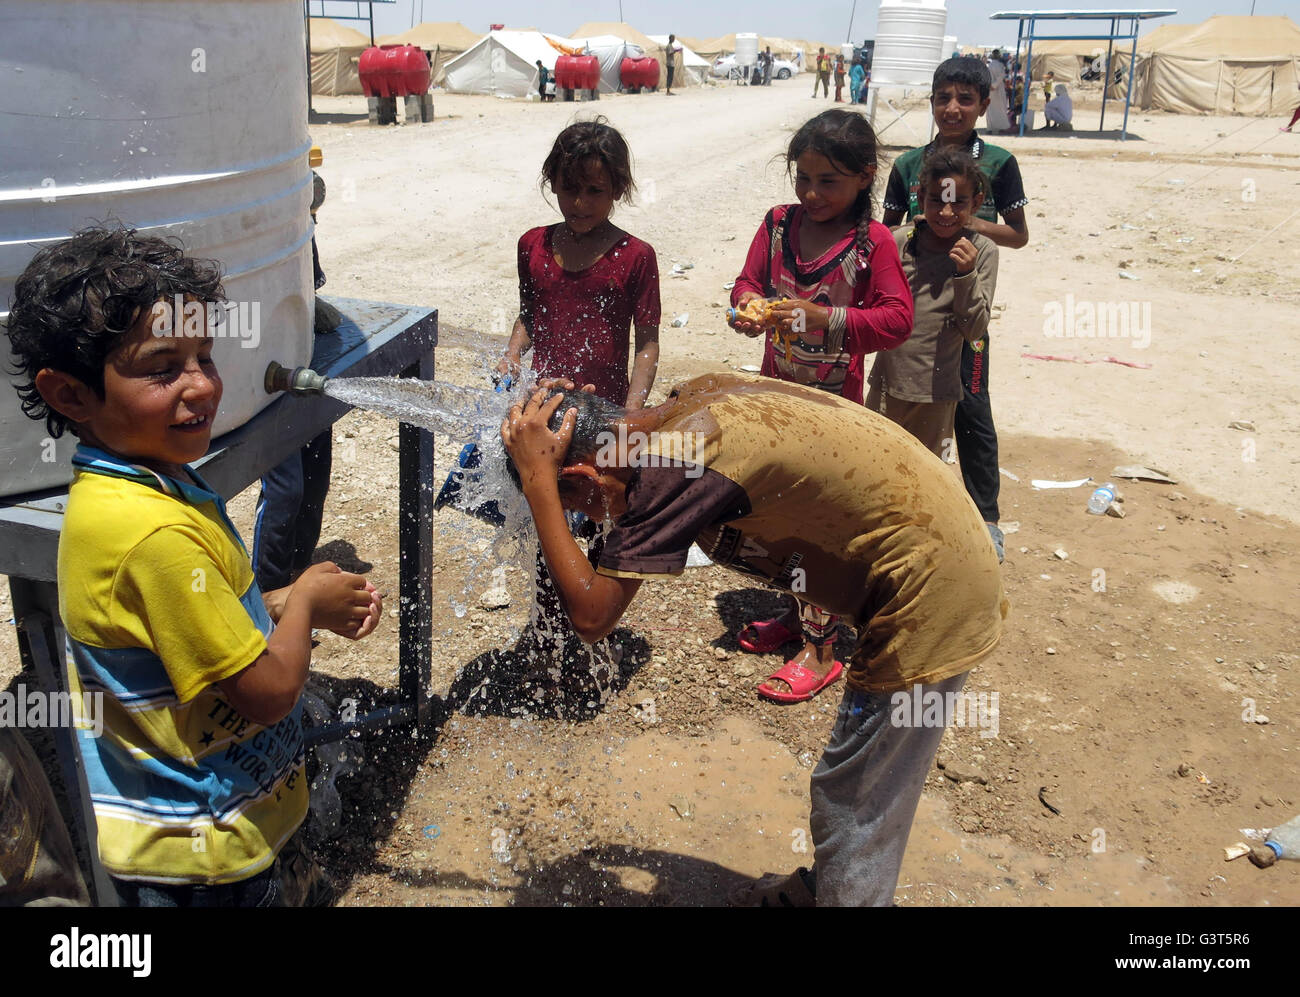 Fallujah. 14th June, 2016. A boy takes a bath by a water tank in a camp for the Internally Displaced People (IDPs) - Stock Image